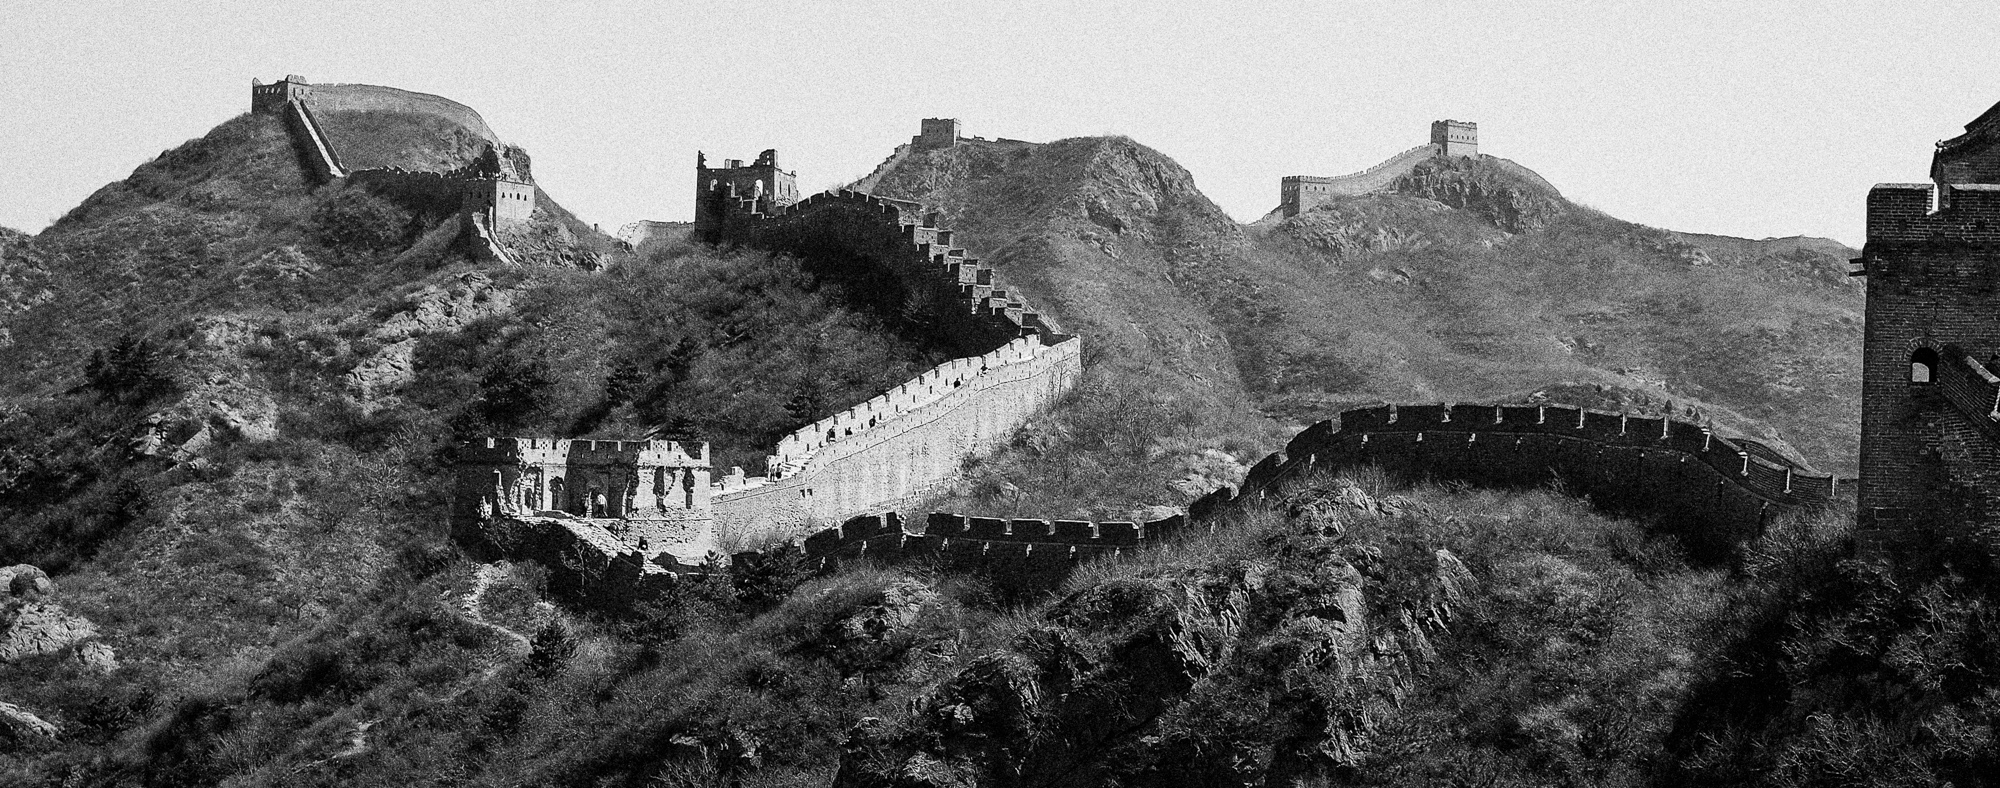 Great_Wall_1